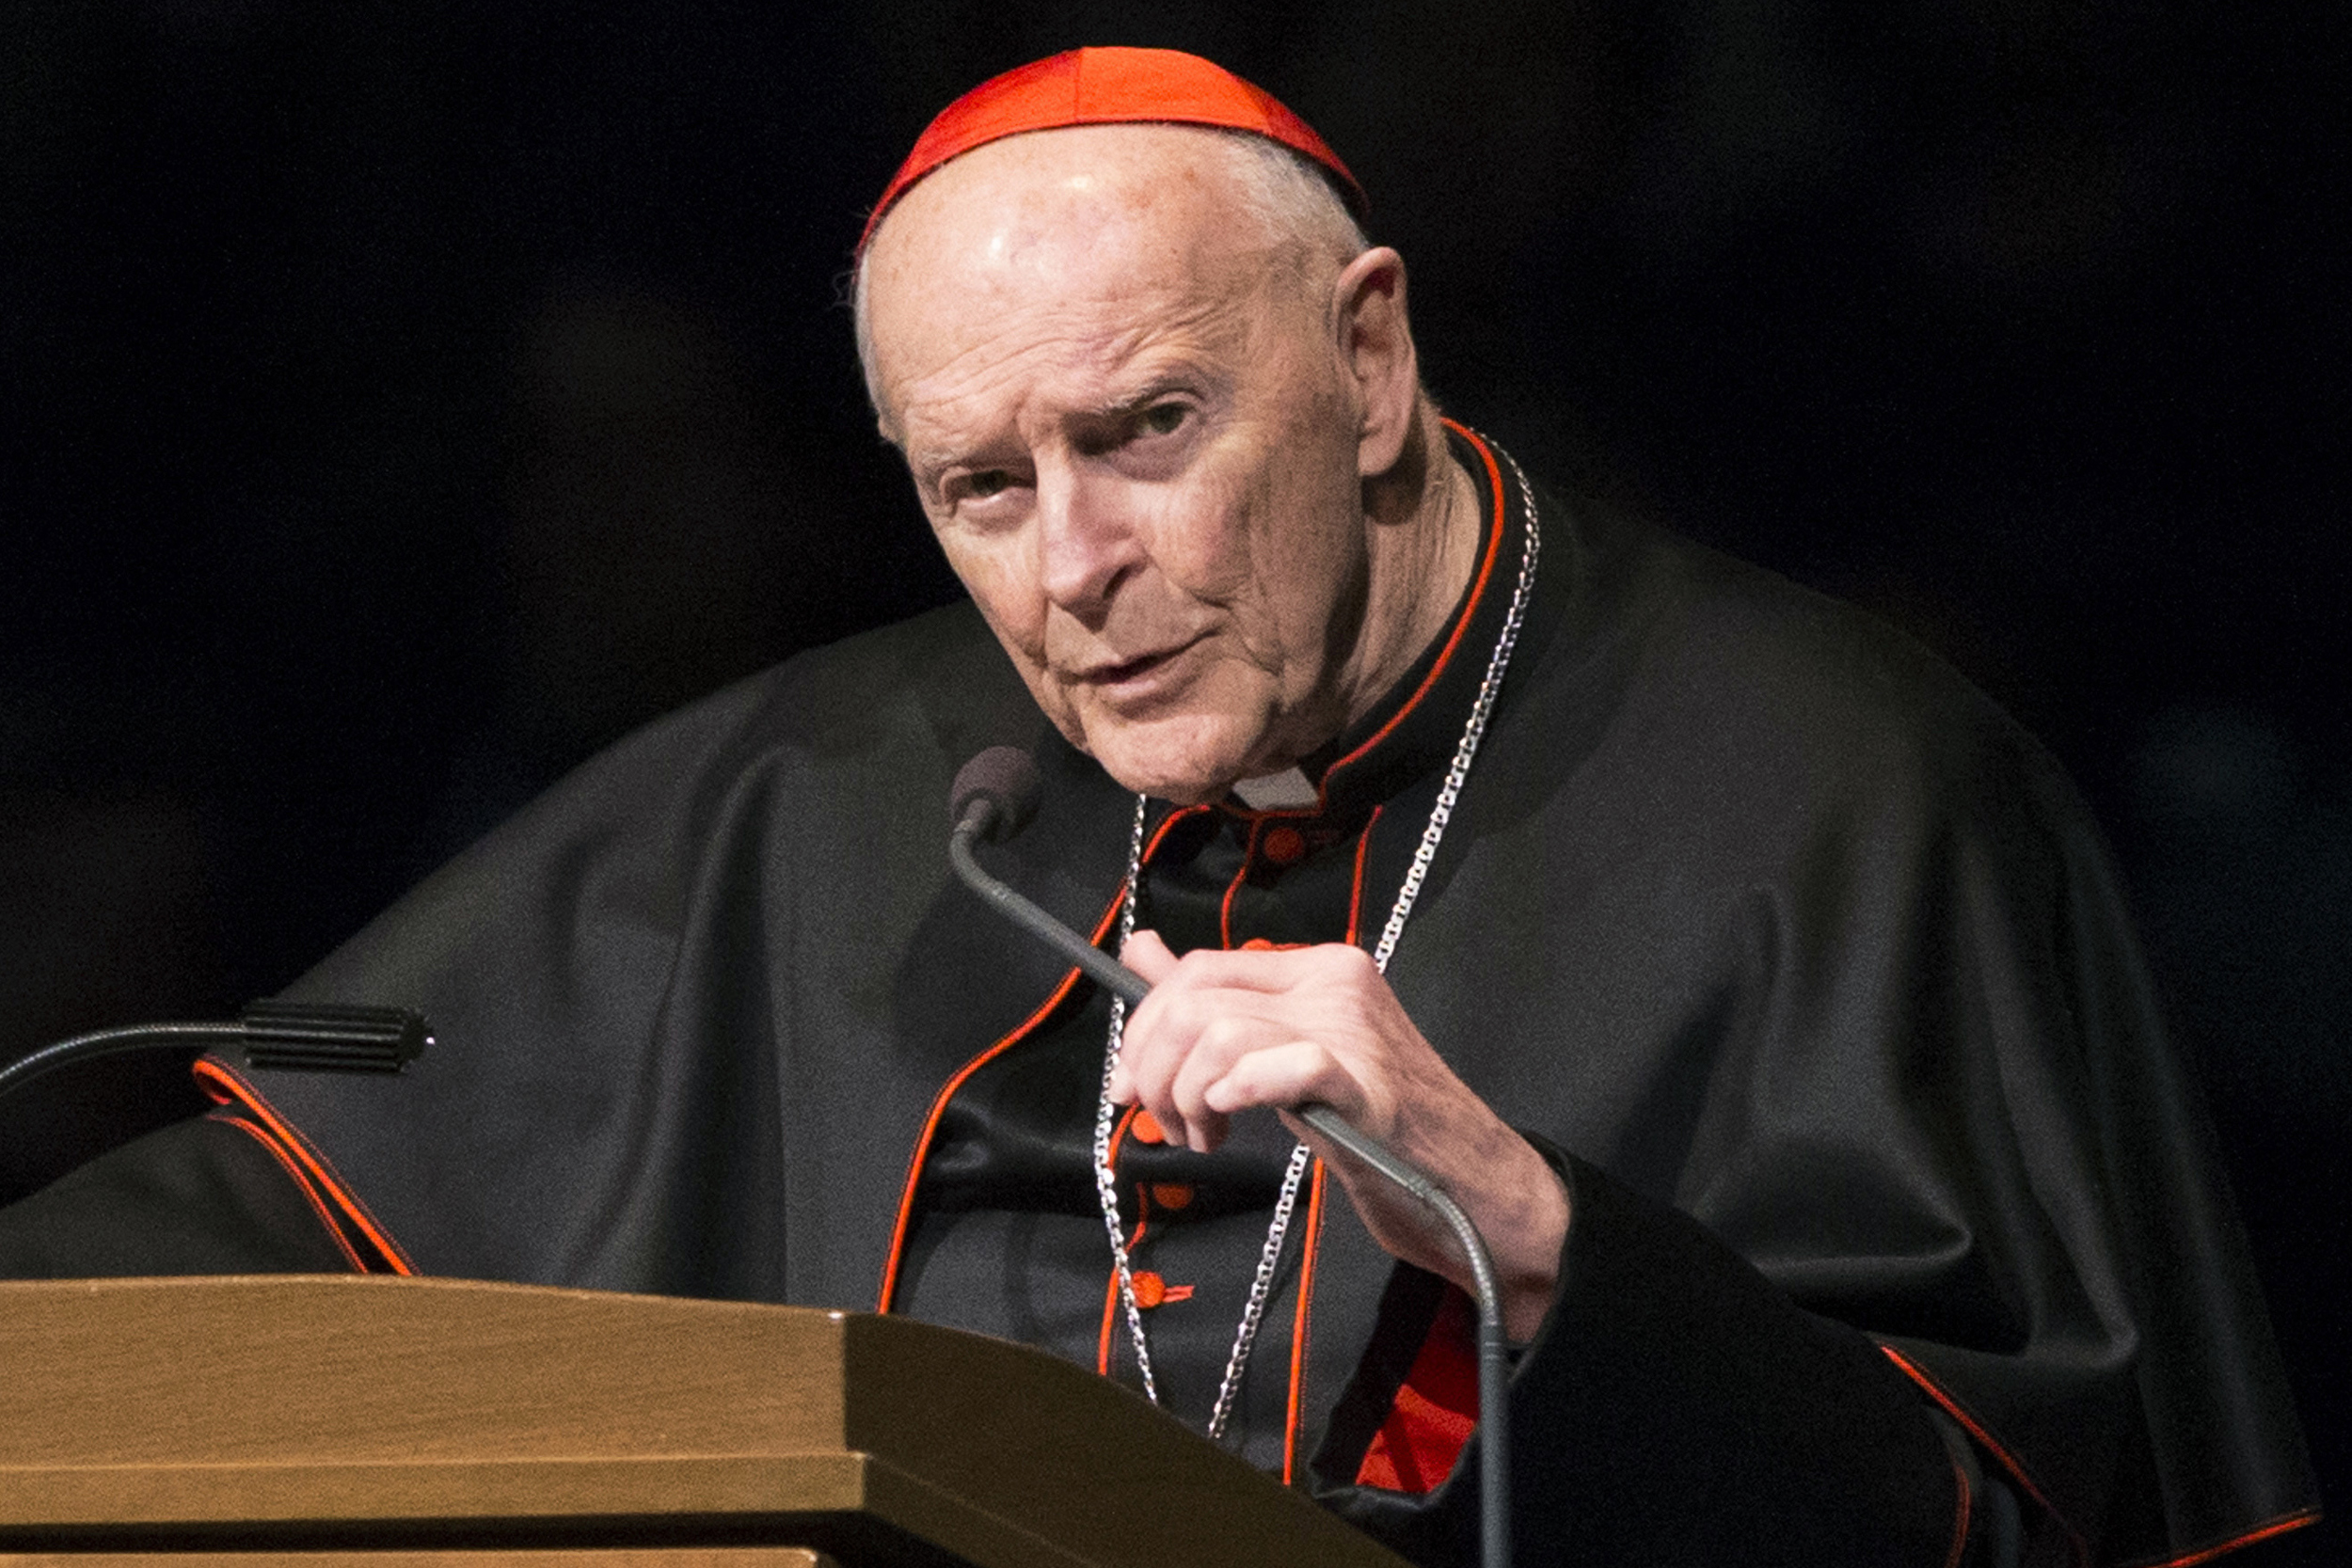 Former Catholic Cardinal Theodore McCarrick Is Charged With Sexually Assaulting Teen